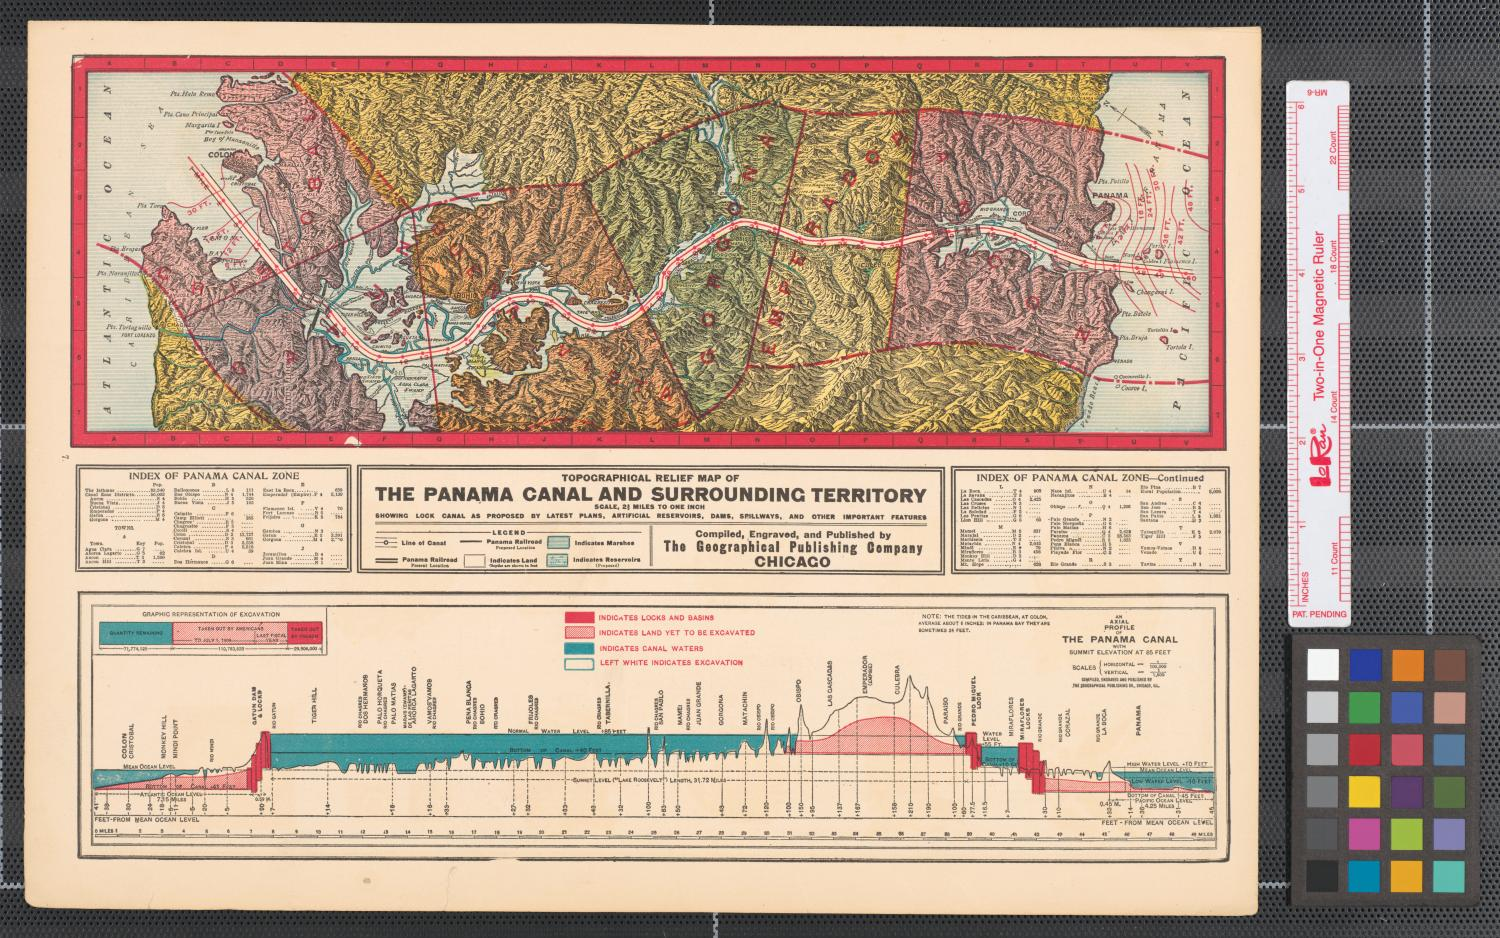 Topographic Map Of Panama.Topographical Relief Map Of The Panama Canal And Surrounding